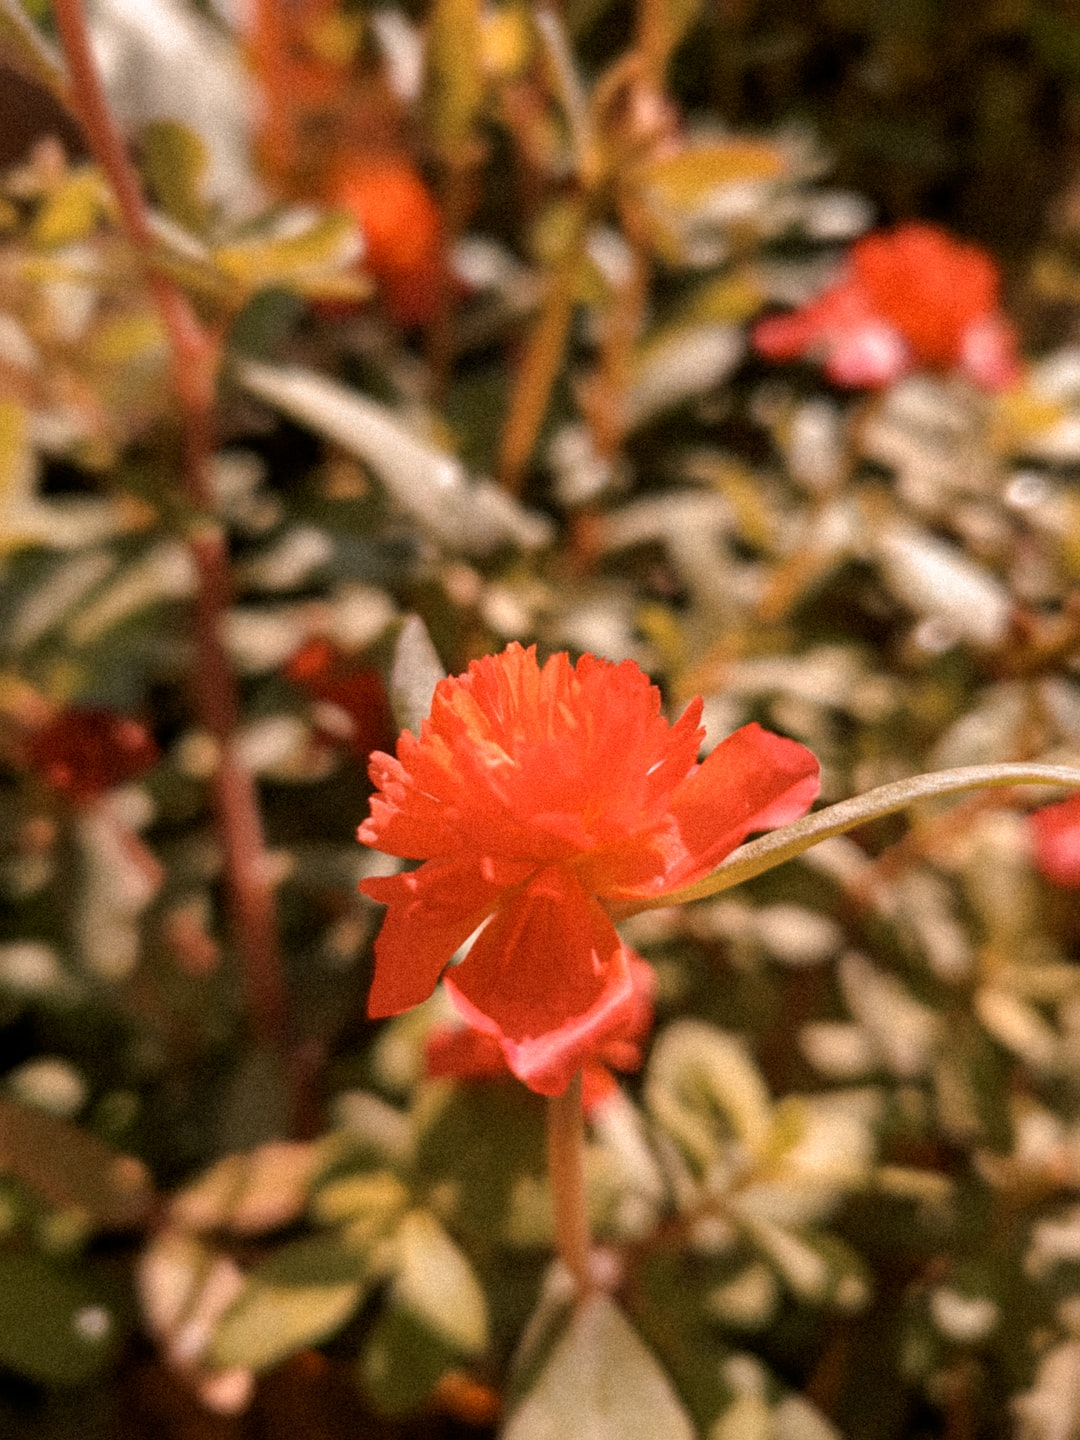 a picture of a red flower